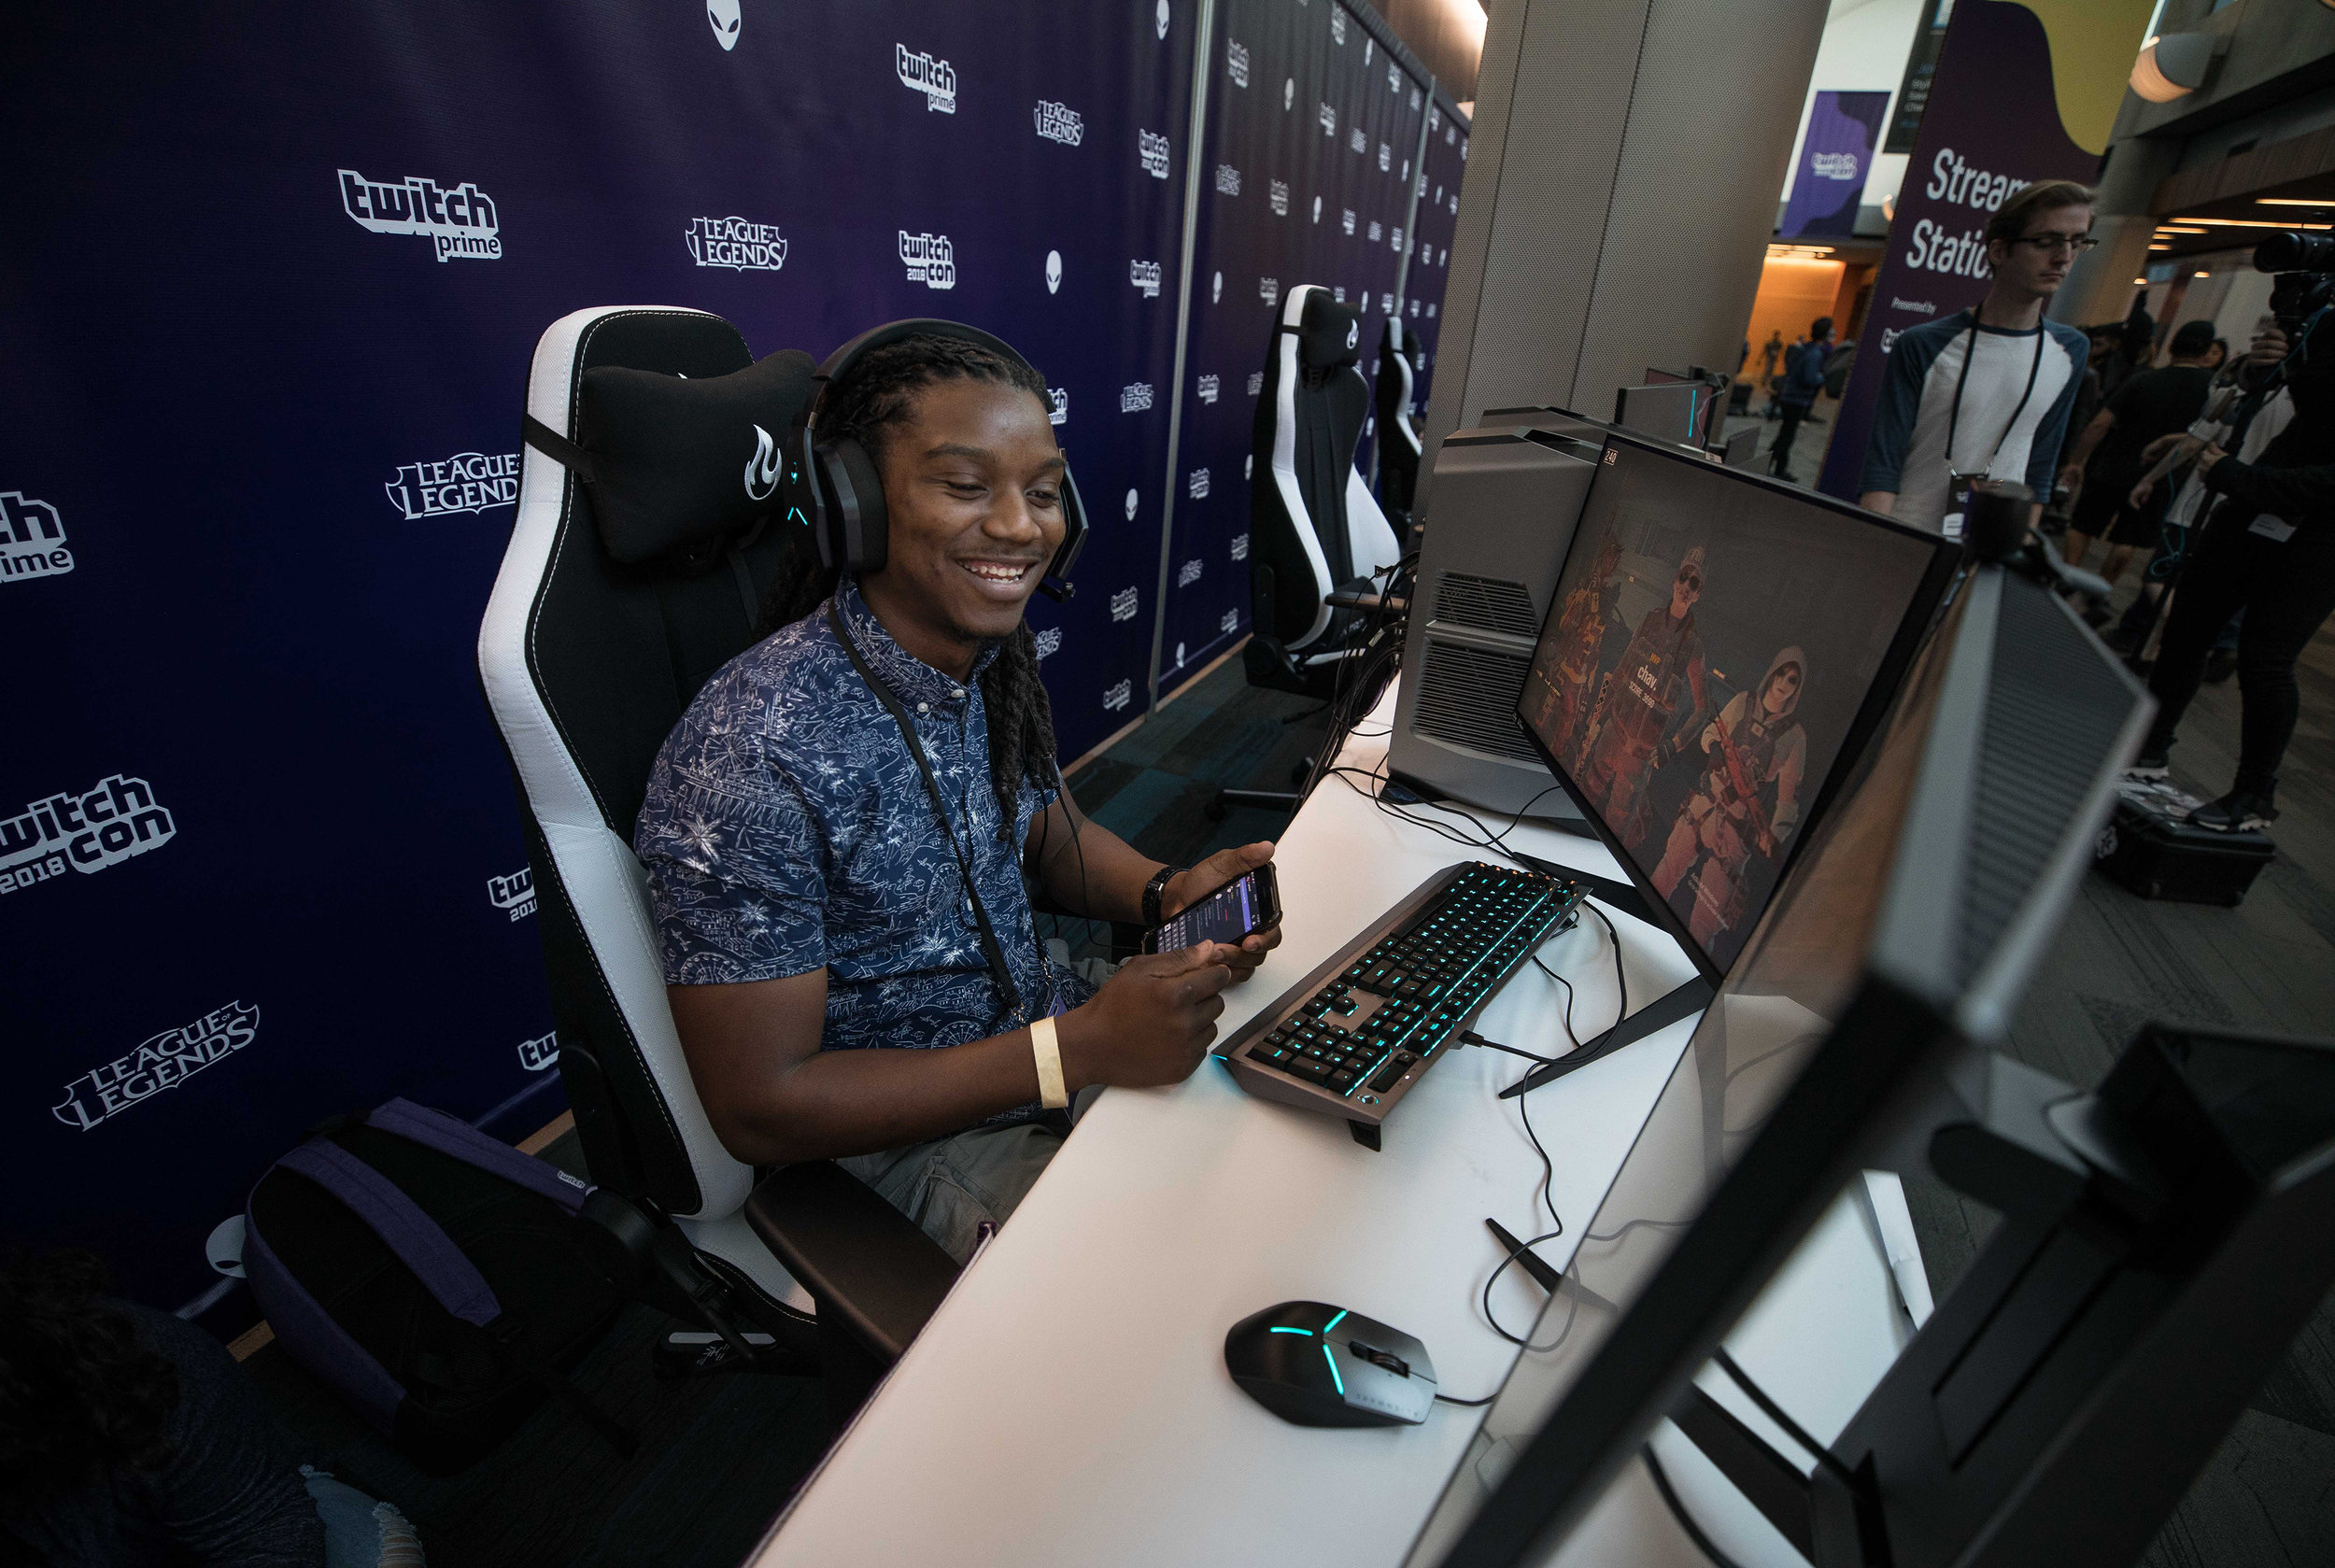 Gamer fan checking things out at League of Legends-TwitchCon booth, San Jose Convention Center on October 26, 2018 in San Jose, California.  Photo by Hannah Smith / ESPAT Media